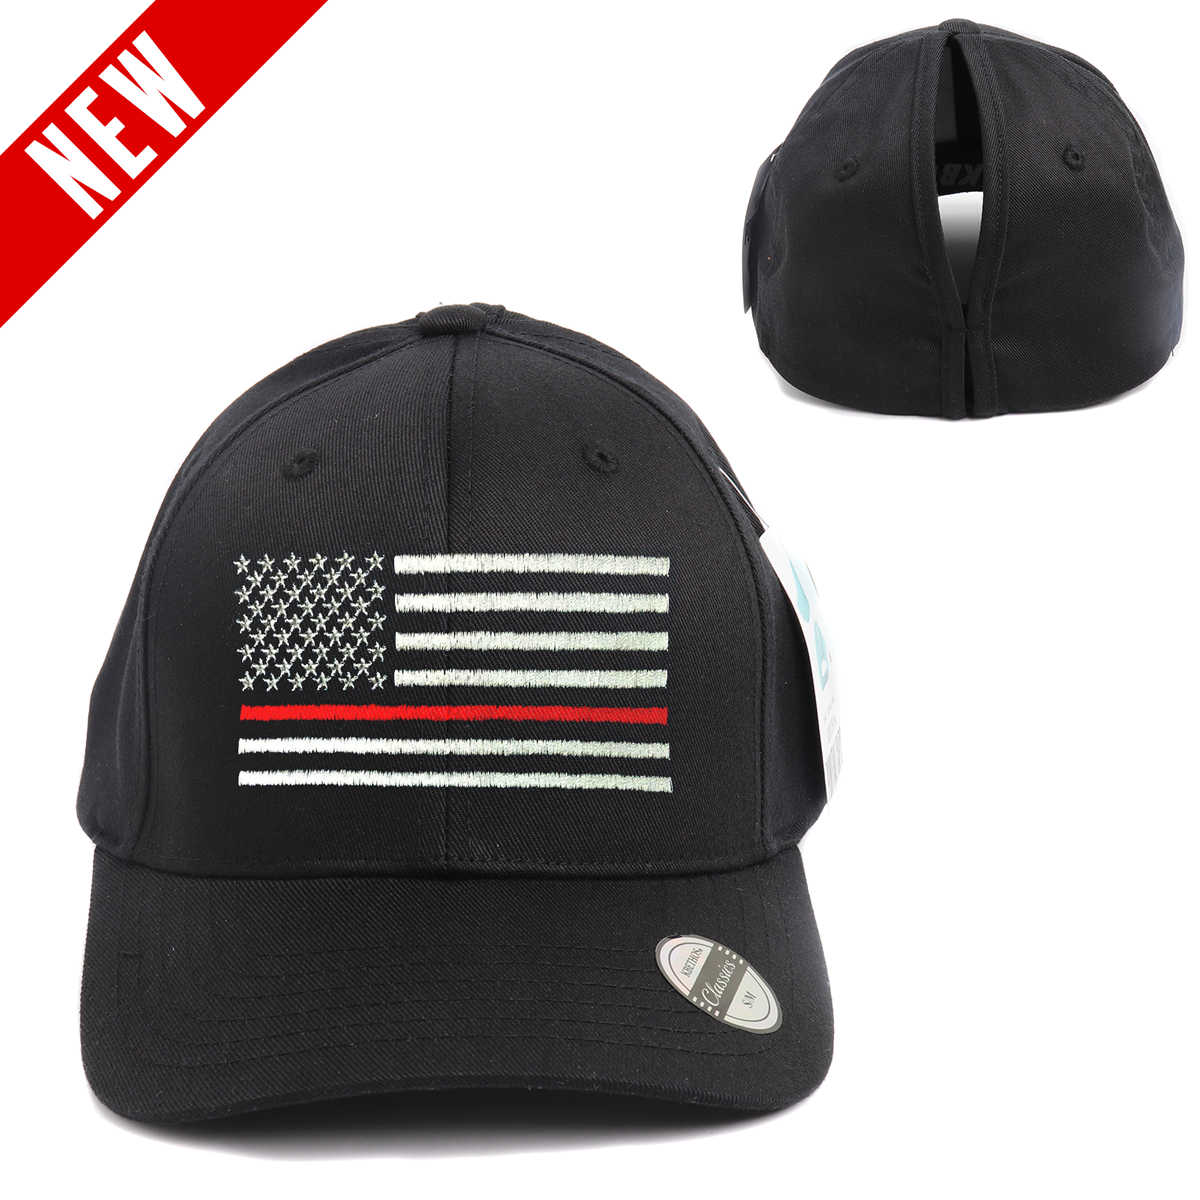 Thin Red Line Flag Ponytail Spandex Headband Hat